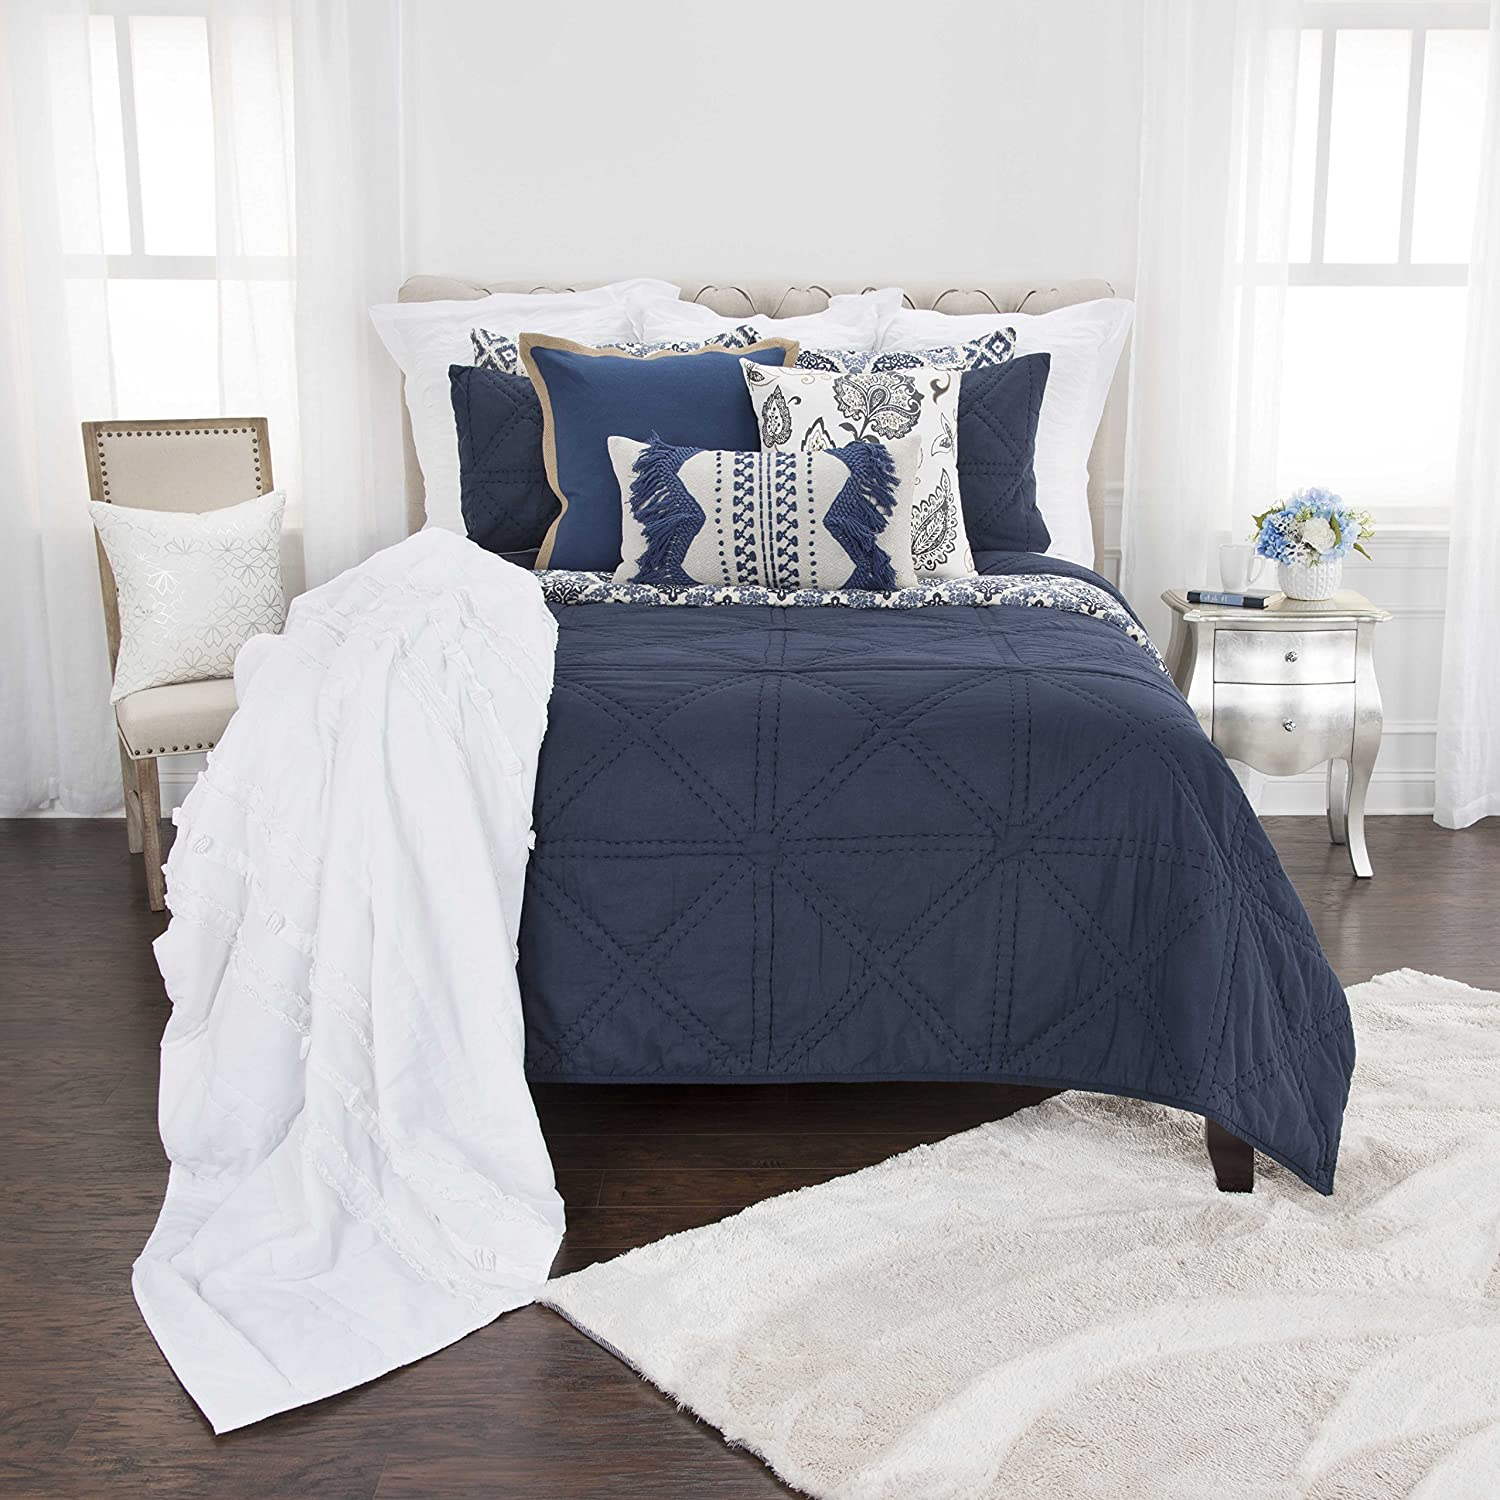 Rizzy Home Simpson White Maddux Place 3 Piece Quilt Set Queen